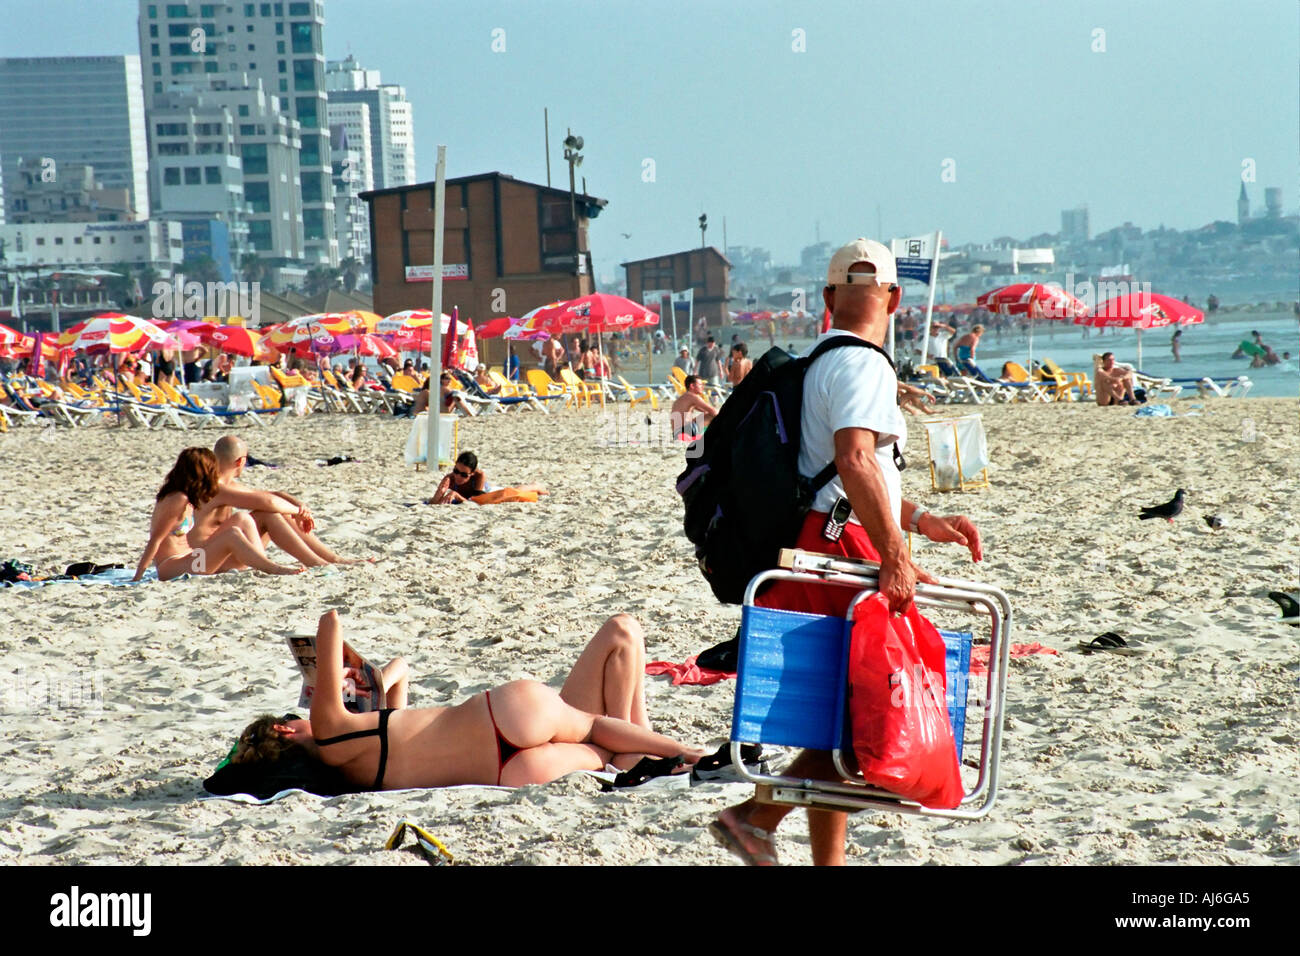 722c24f88c729d Israel Tel Aviv Man staring at a woman sun bathing with a thong ...